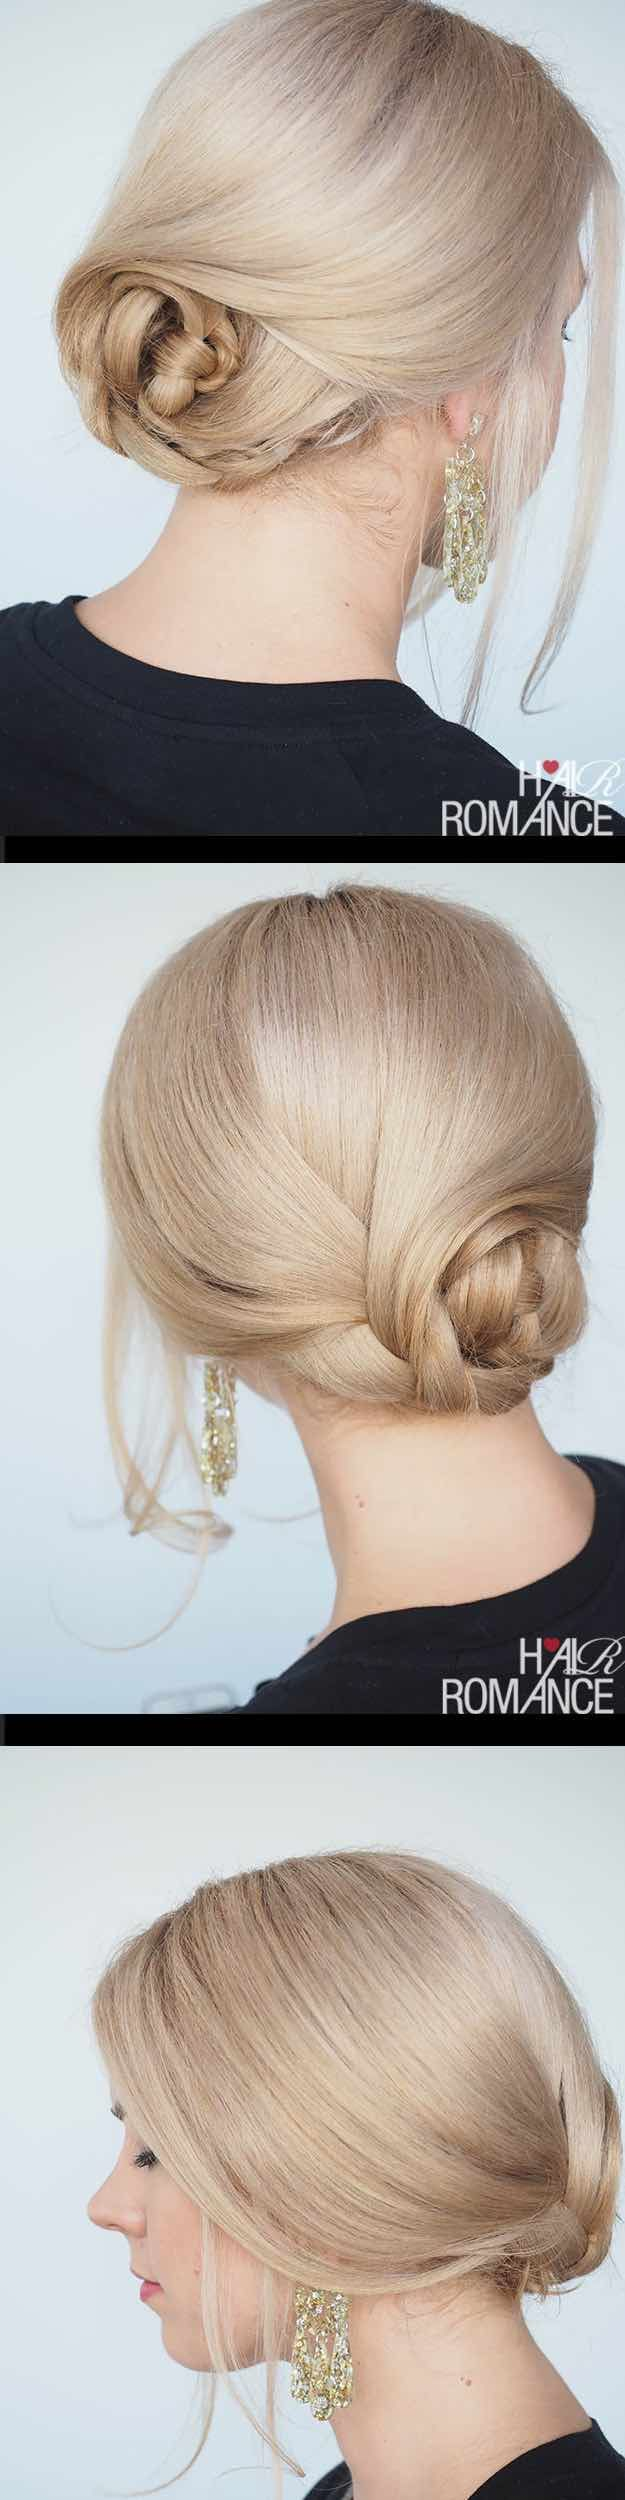 Best Hairstyles for Brides - Quick and Easy Braided Updo- Amazing Hair Styles and Looks for Half Up Medium Styles, Updo With Long Hair, Short Curls, Vintage Looks with Veil, Headpieces, or With Tiara - Wedding Looks for Girls With Round Faces - Awesome Simple Bridal Style With Headband or Elegant Braided Up Dos - thegoddess.com/hairstyles-for-brides